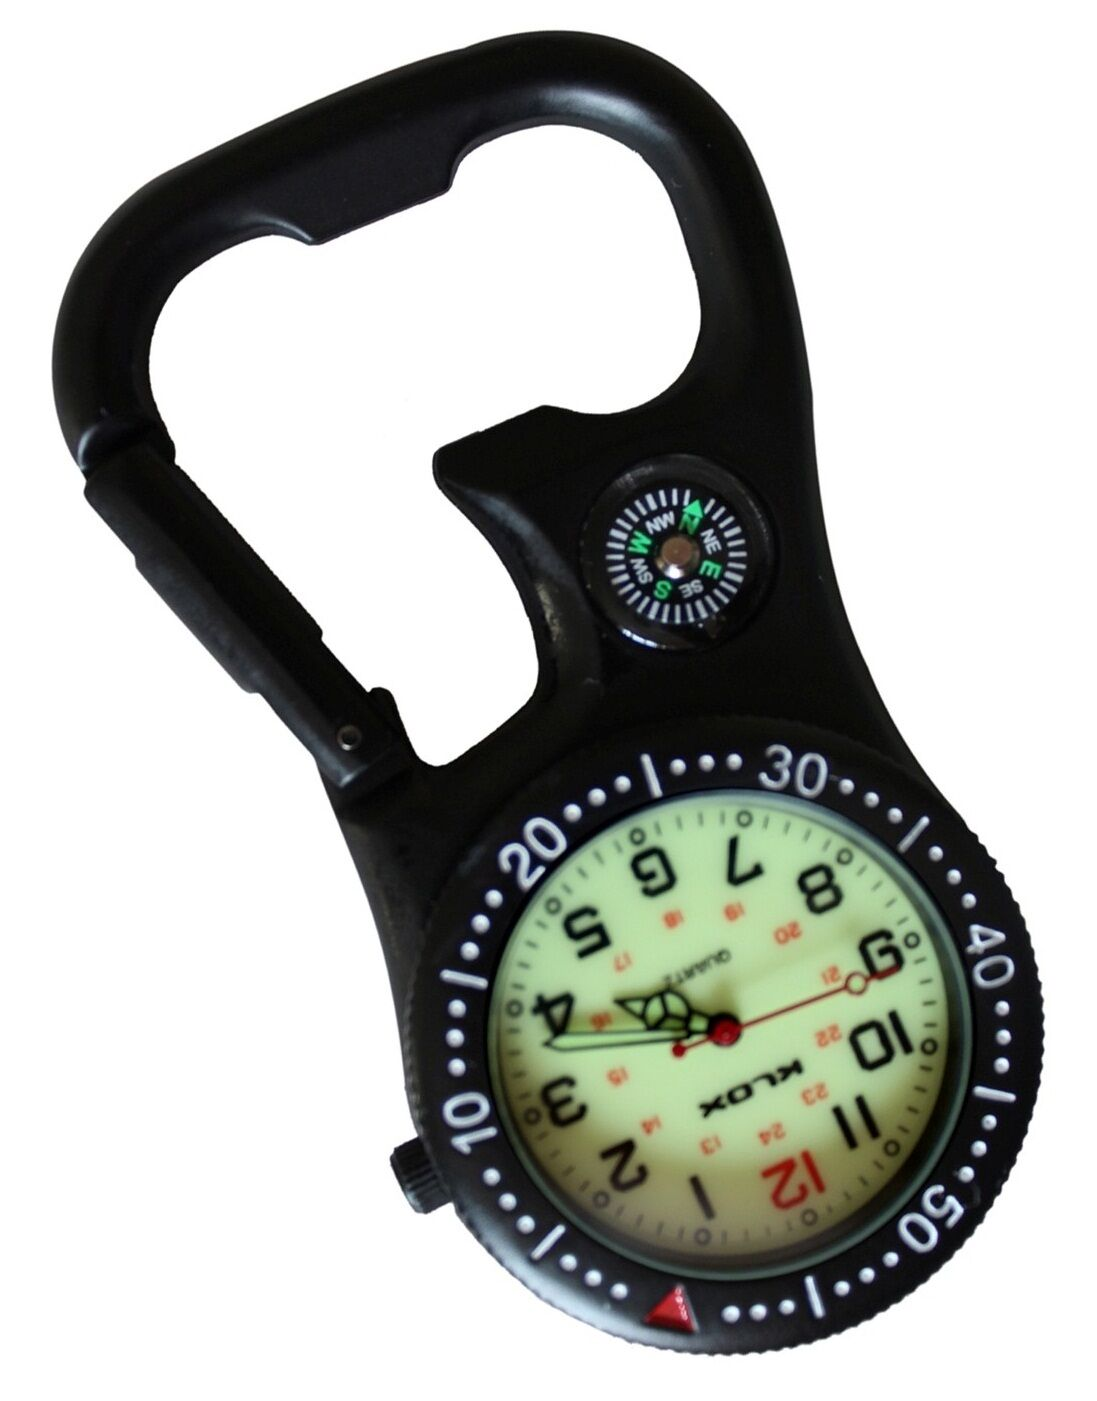 Black Clip-on Carabiner Fob Watch With Compass and Bottle Opener for ... dd9cf5a5b00e0